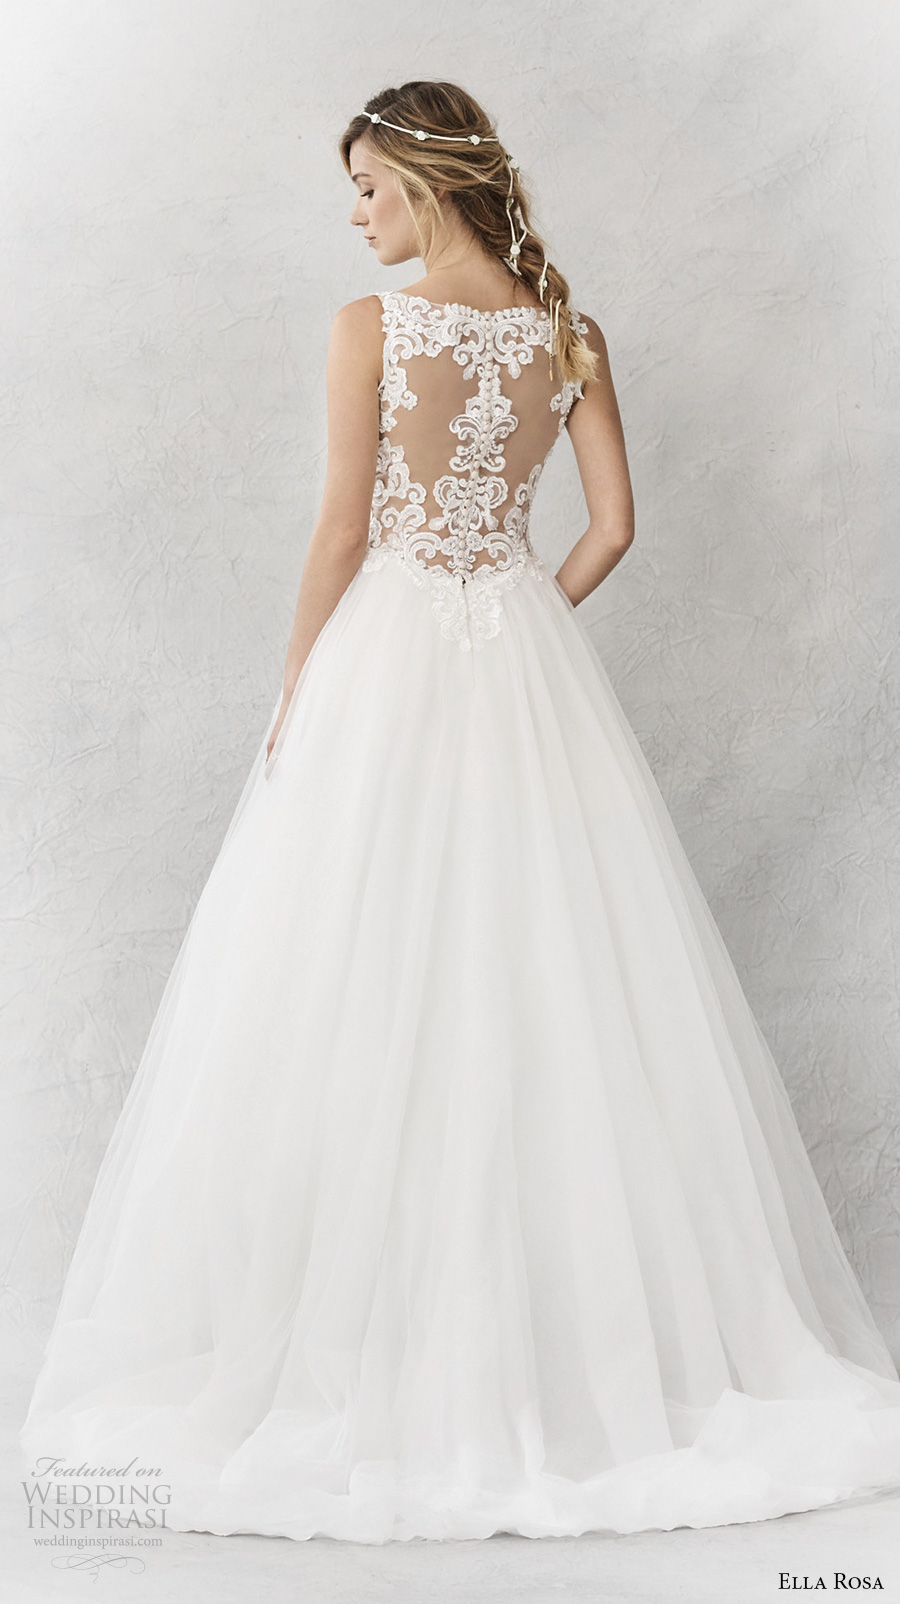 ella rosa spring 2017 bridal sleeveless thick strap v neck heavily embellished bodice romantic a line wedding dress cover lace back sweep train (363) bv